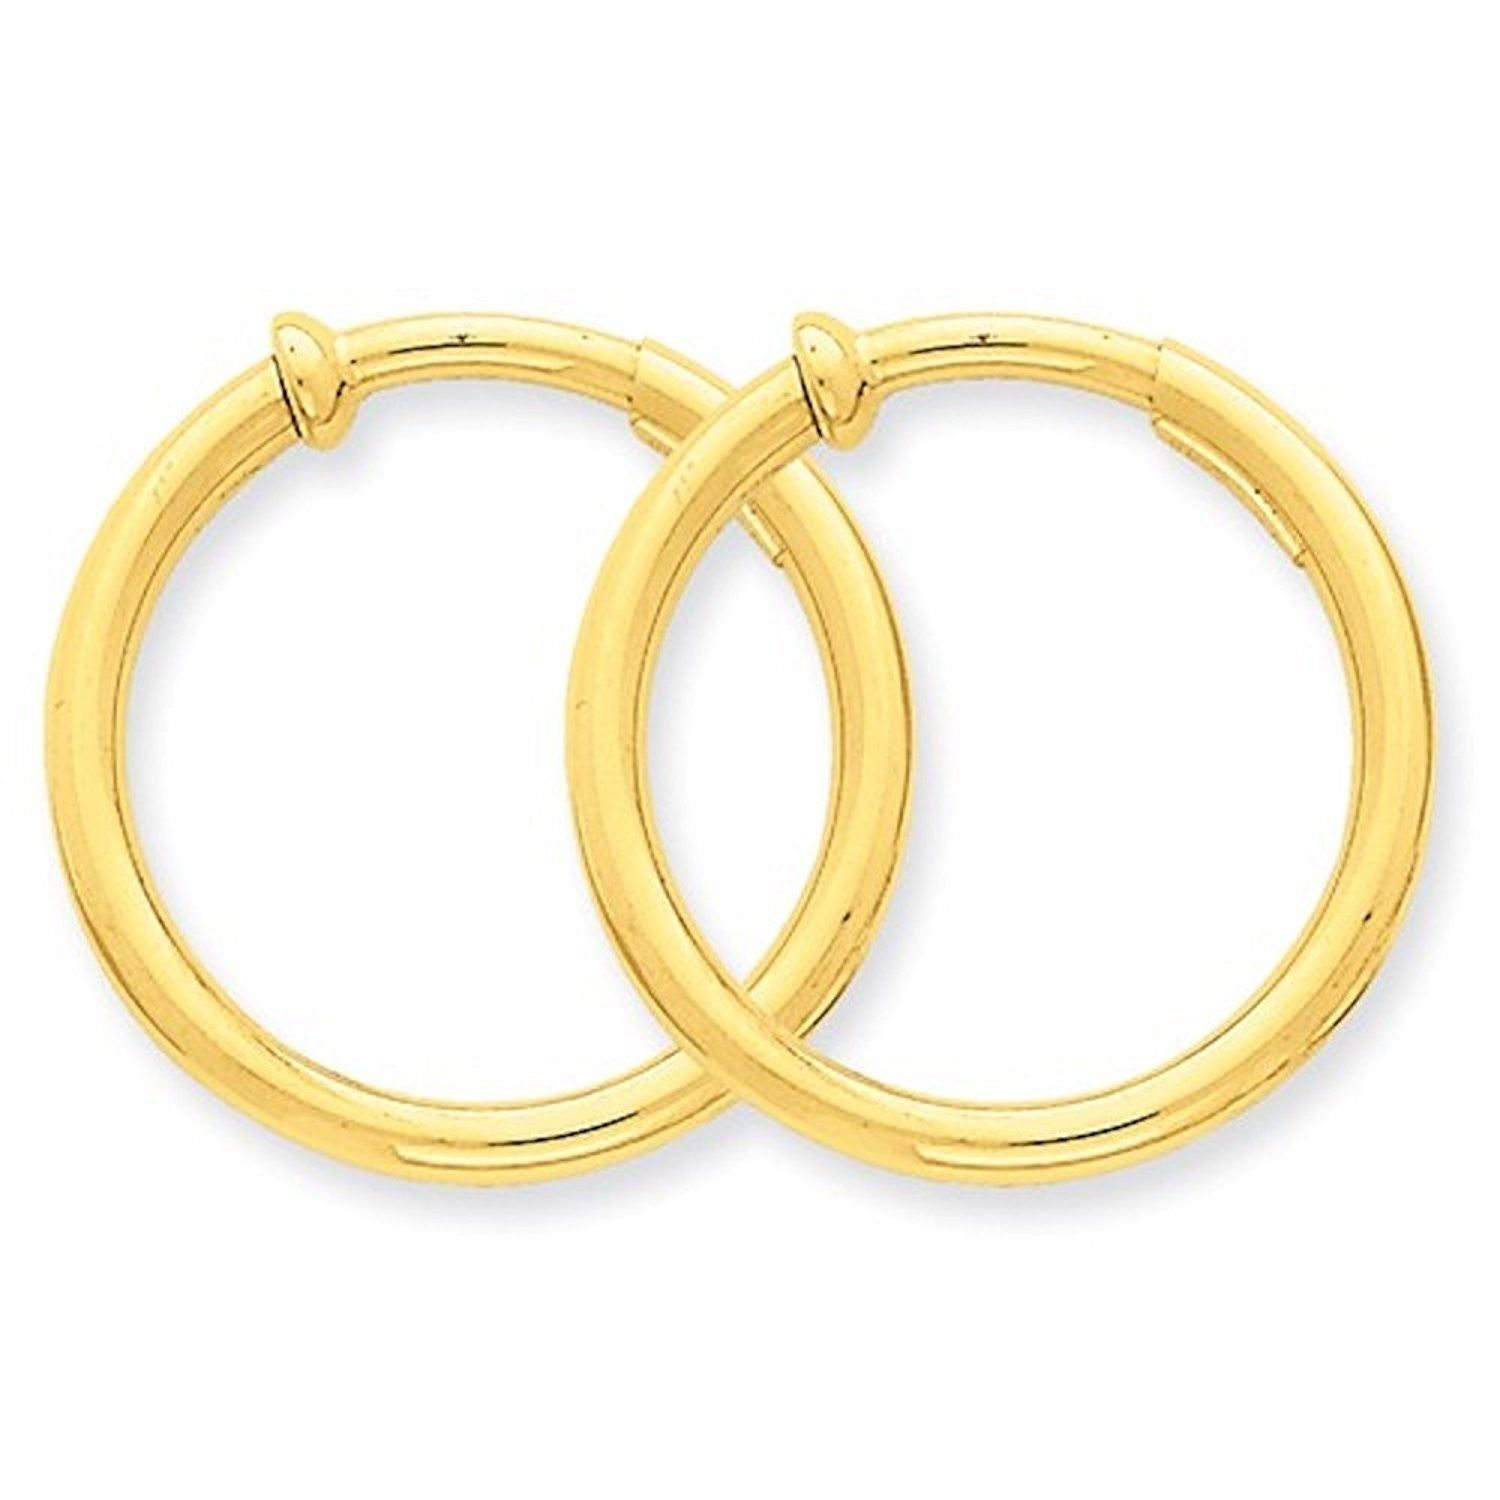 14K Yellow Gold 25mm x 2.5mm Non Pierced Round Hoop Earrings